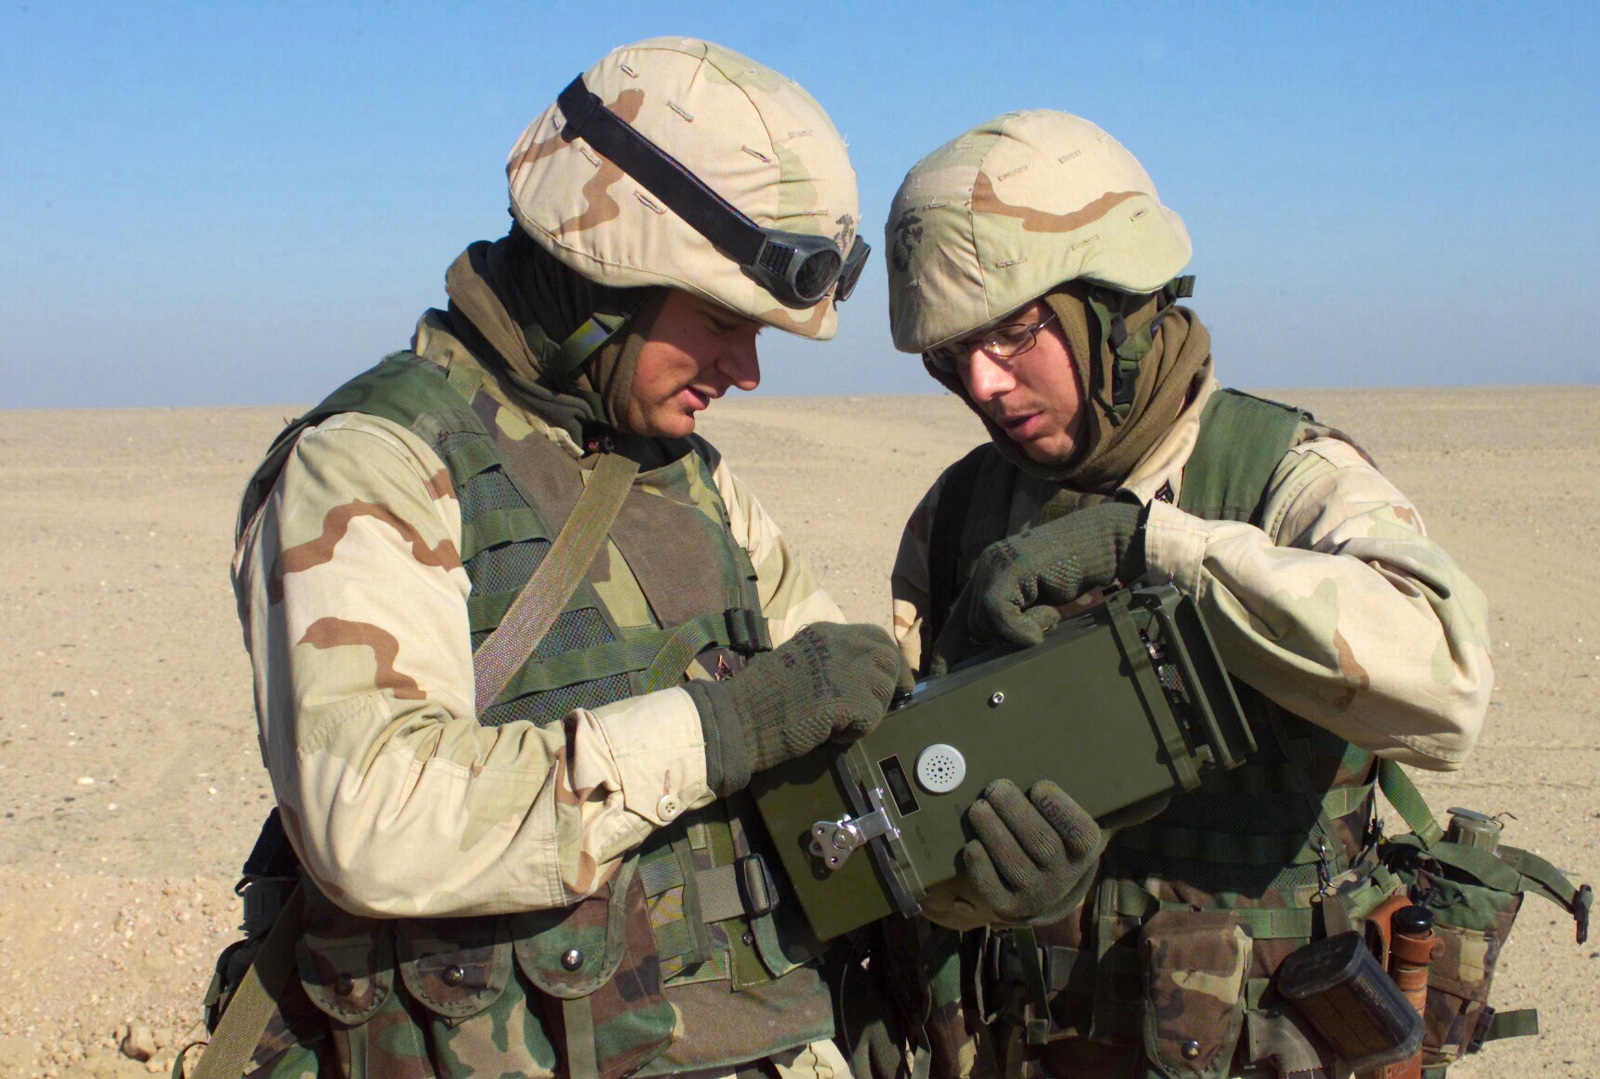 US Marine Corps (USMC) Corporal (CPL) Harry Klein (left) and CPL Shawn Cook, both assigned to 1ST Marine Division, examine an XM22 Automatic Chemical Agent Detection Alarm (ACADA) during an exercise conducted in Kuwait, during Operation ENDURING FREEDOM